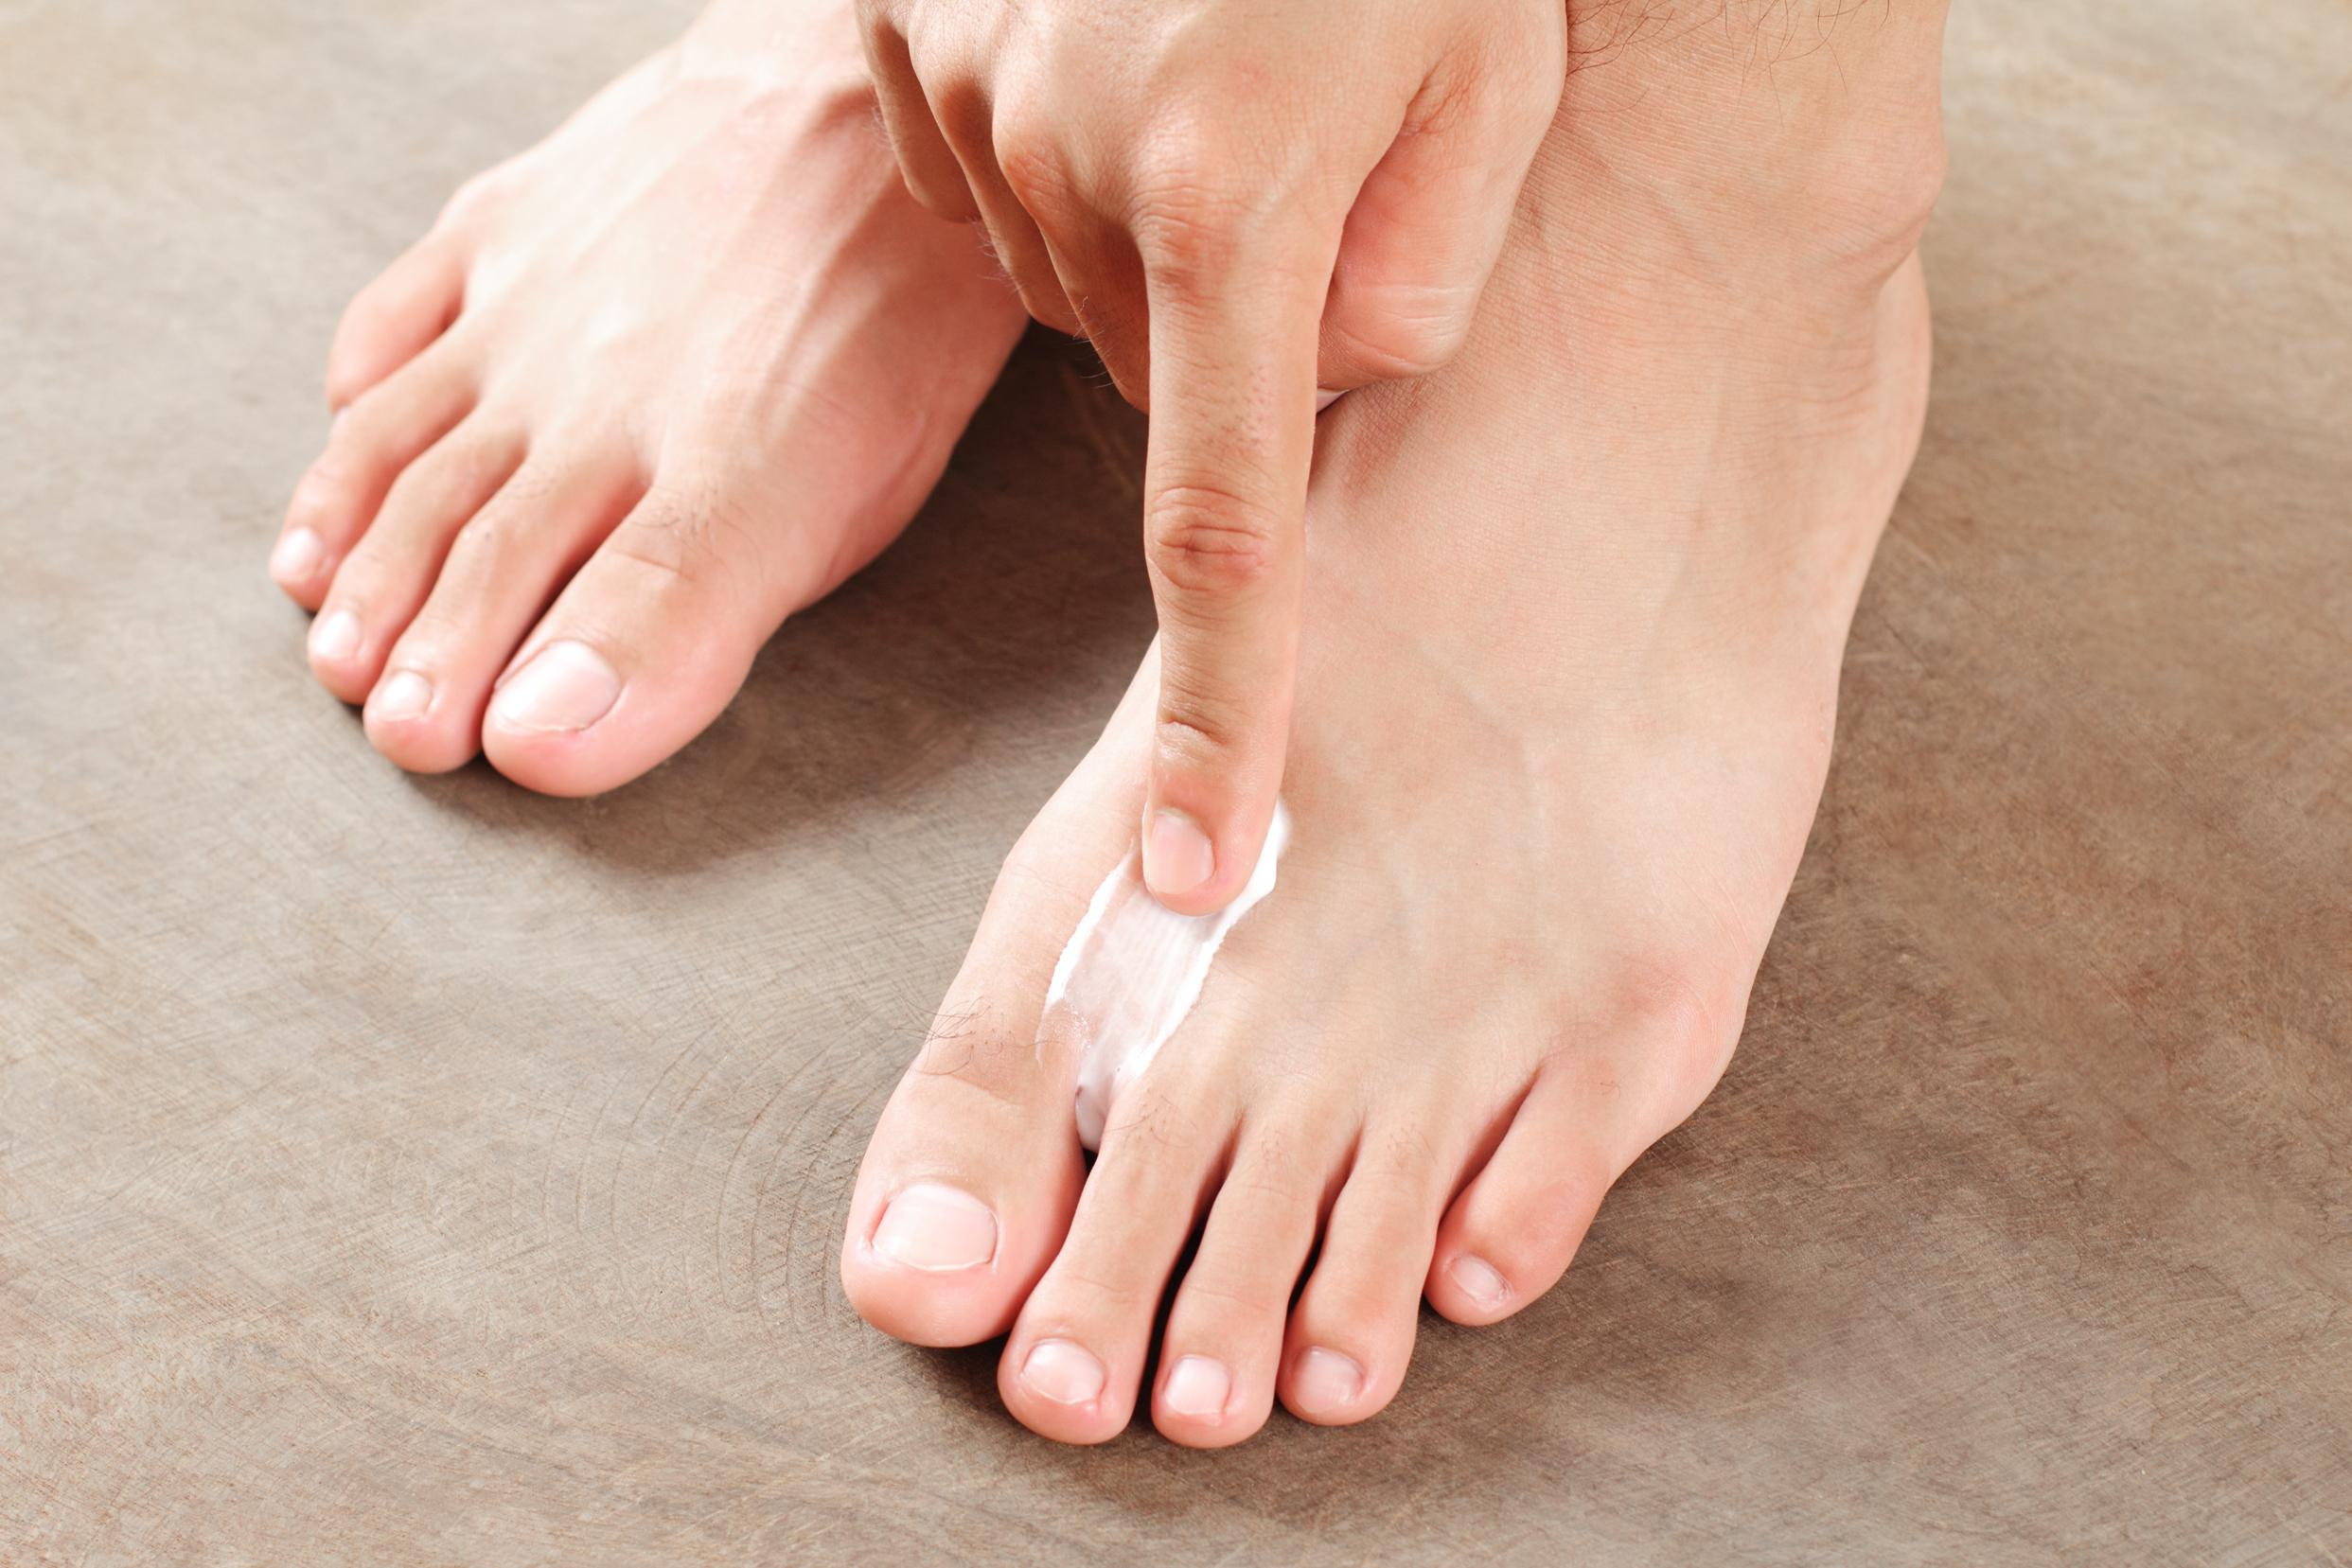 Athletes Foot Treatment